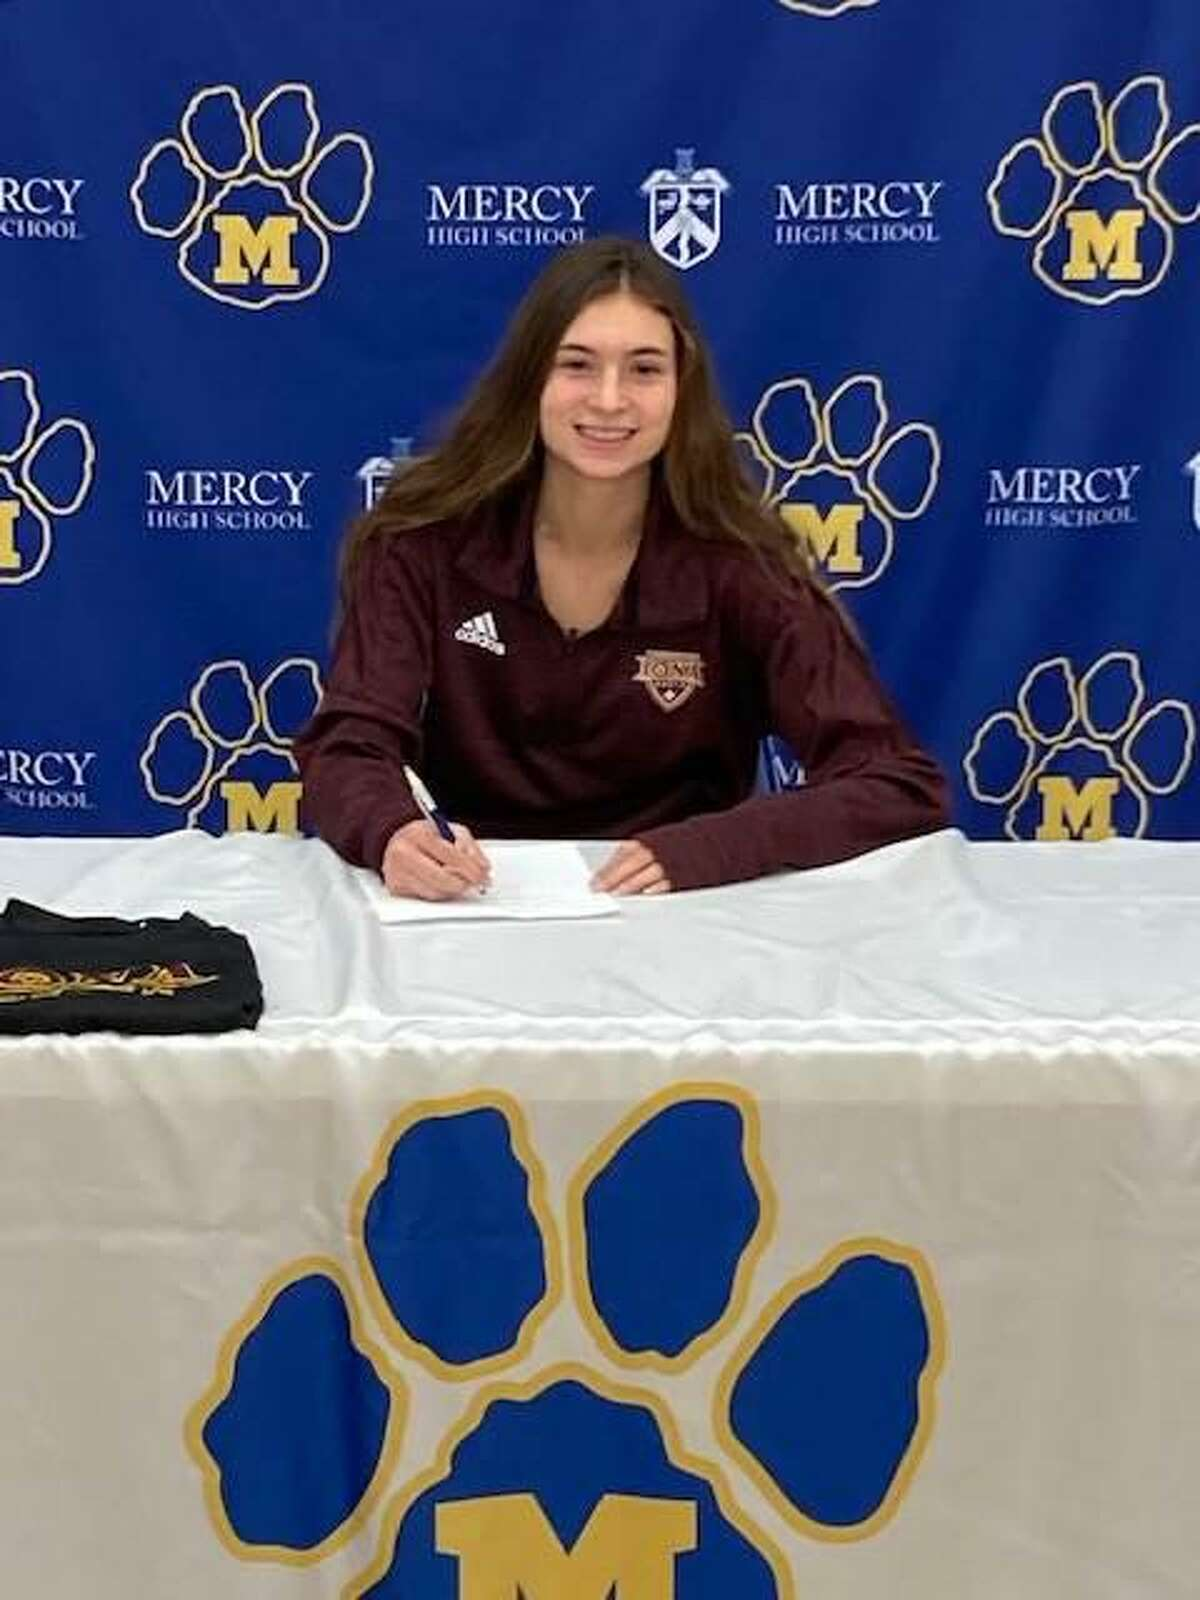 Mercy's Katie Menard has signed on to play soccer and track and field at Iona College.